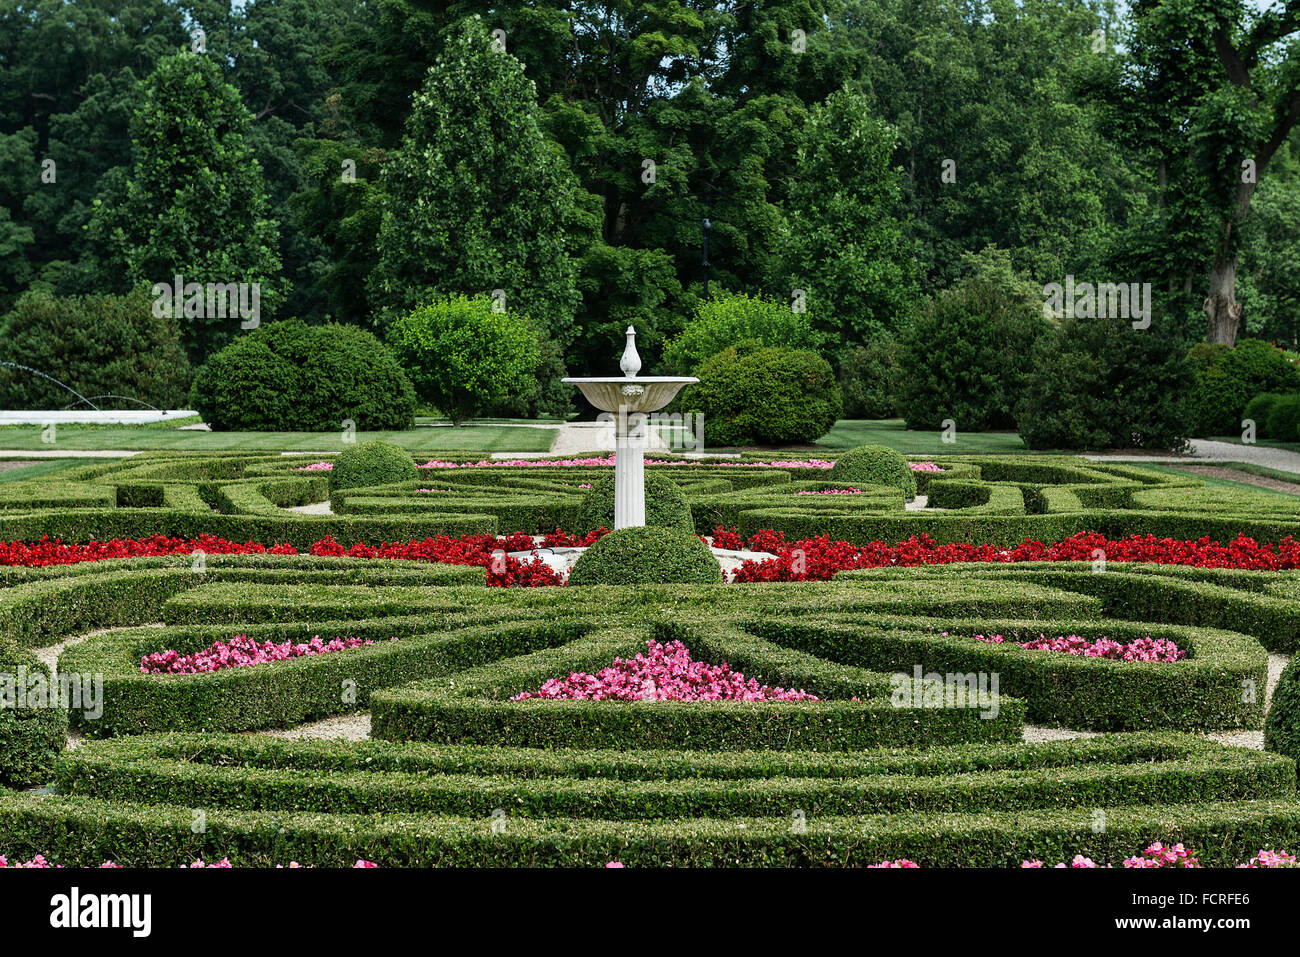 Boxwood Garden, Nemours Mansion and Gardens, Wilmington, Delaware, USA - Stock Image